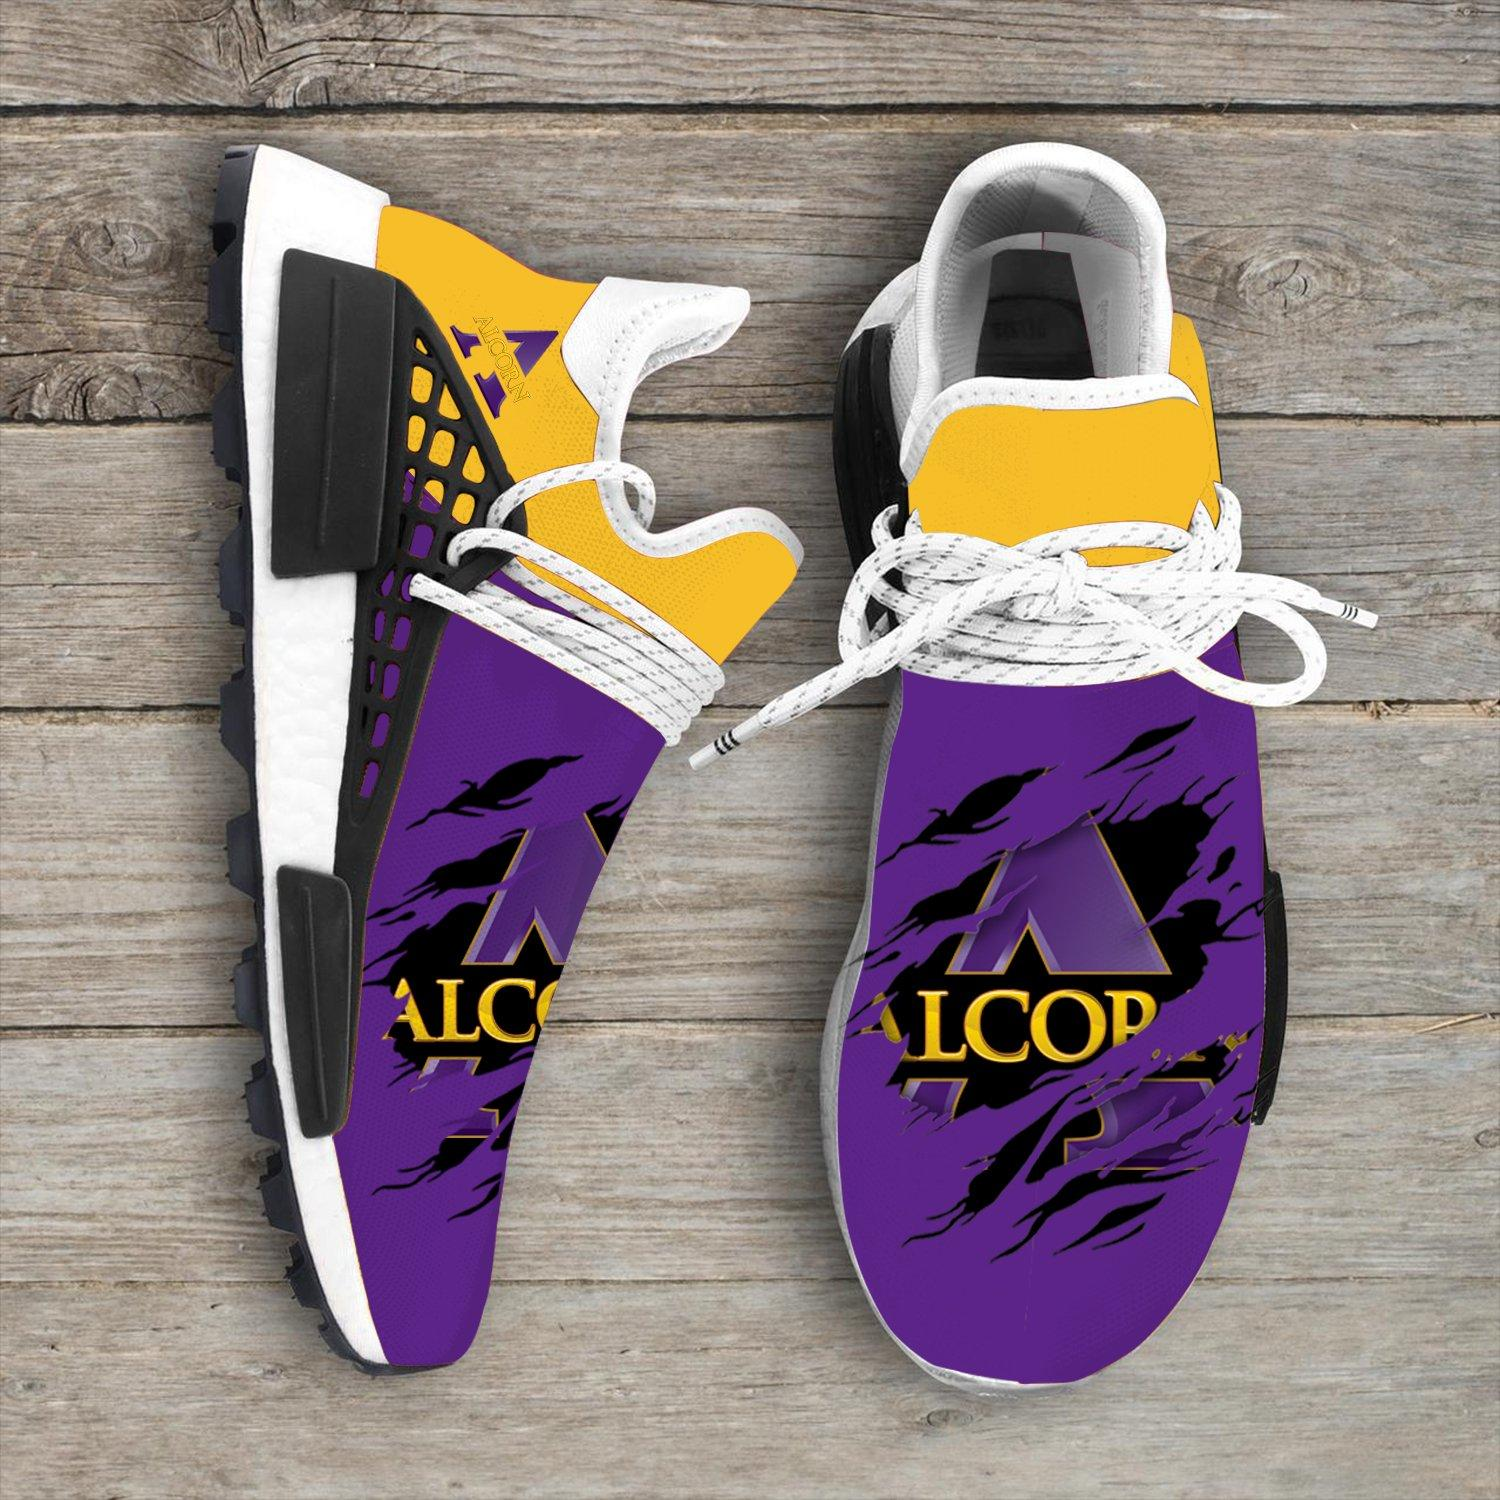 Alcorn State Braves NCAA Sport Teams NMD Human Race Sneakers Shoes 2020